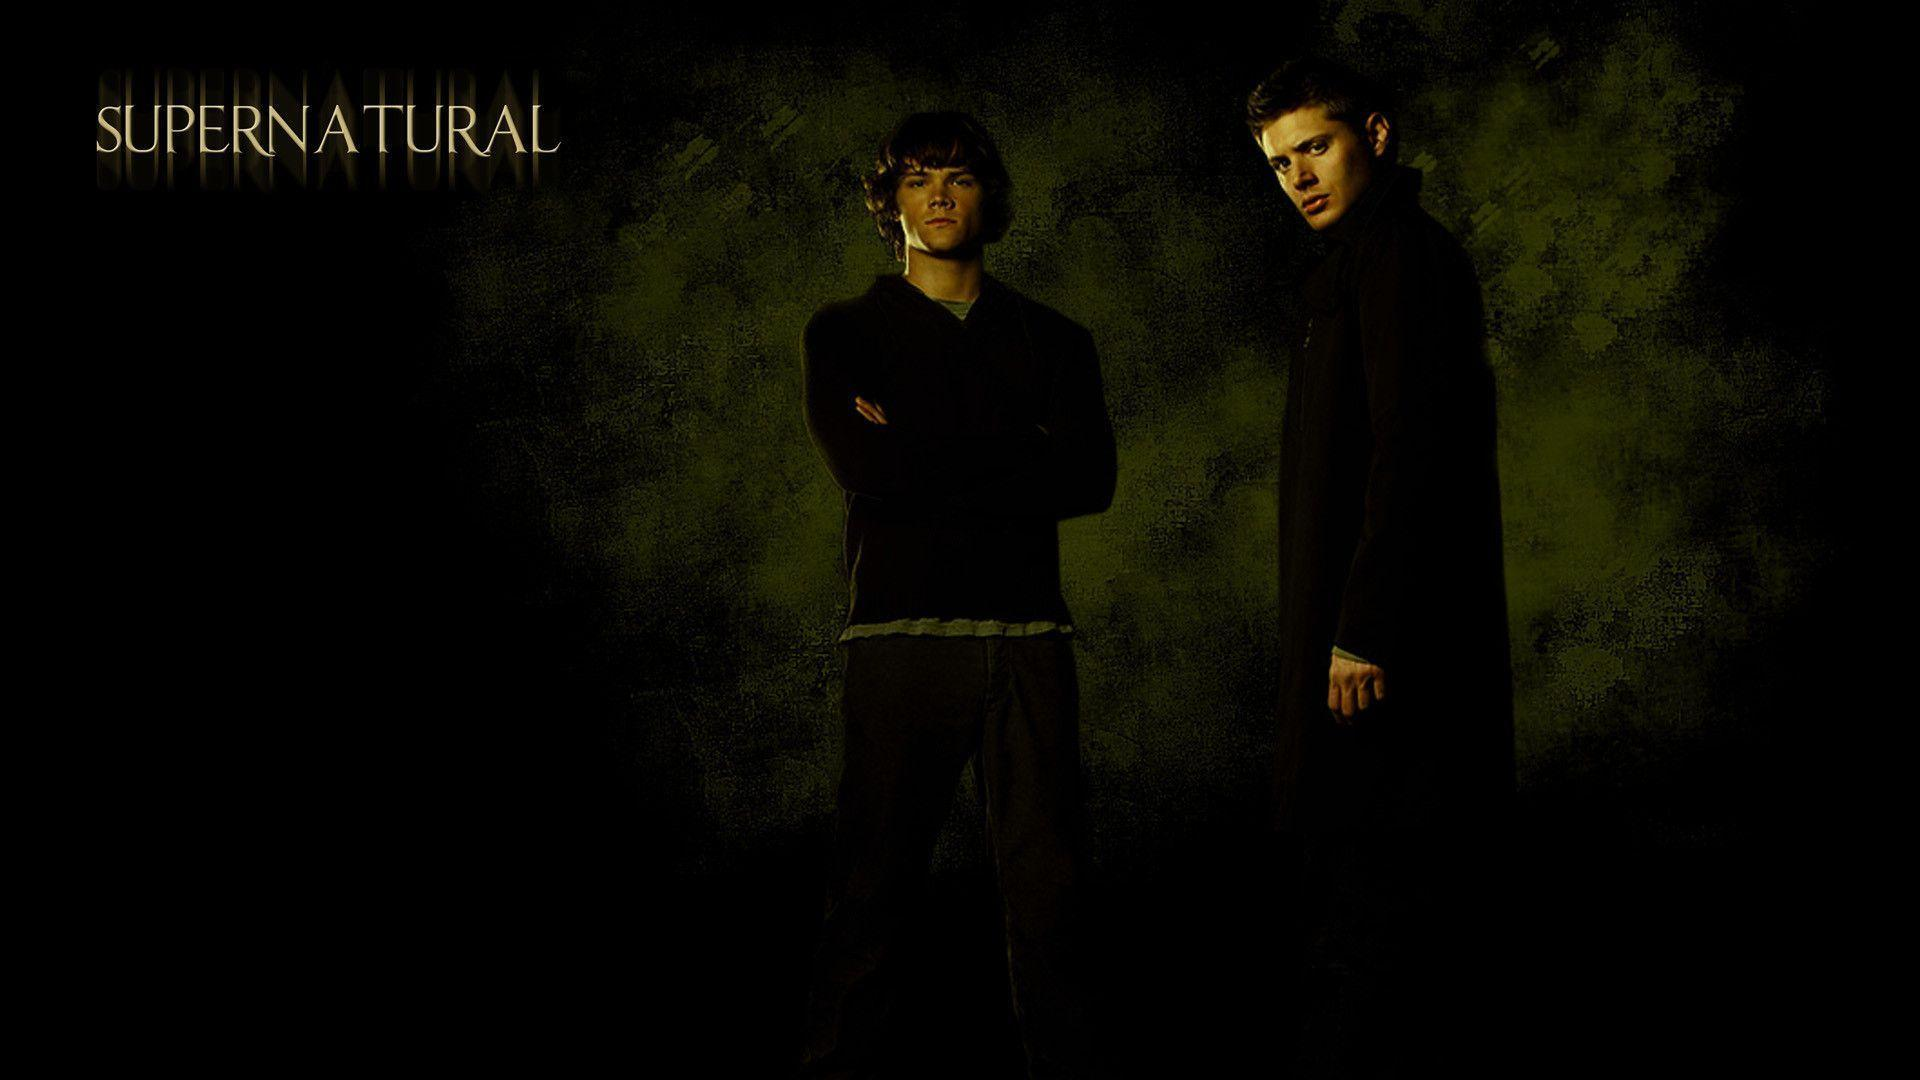 Supernatural Wallpapers 1080P wallpapers